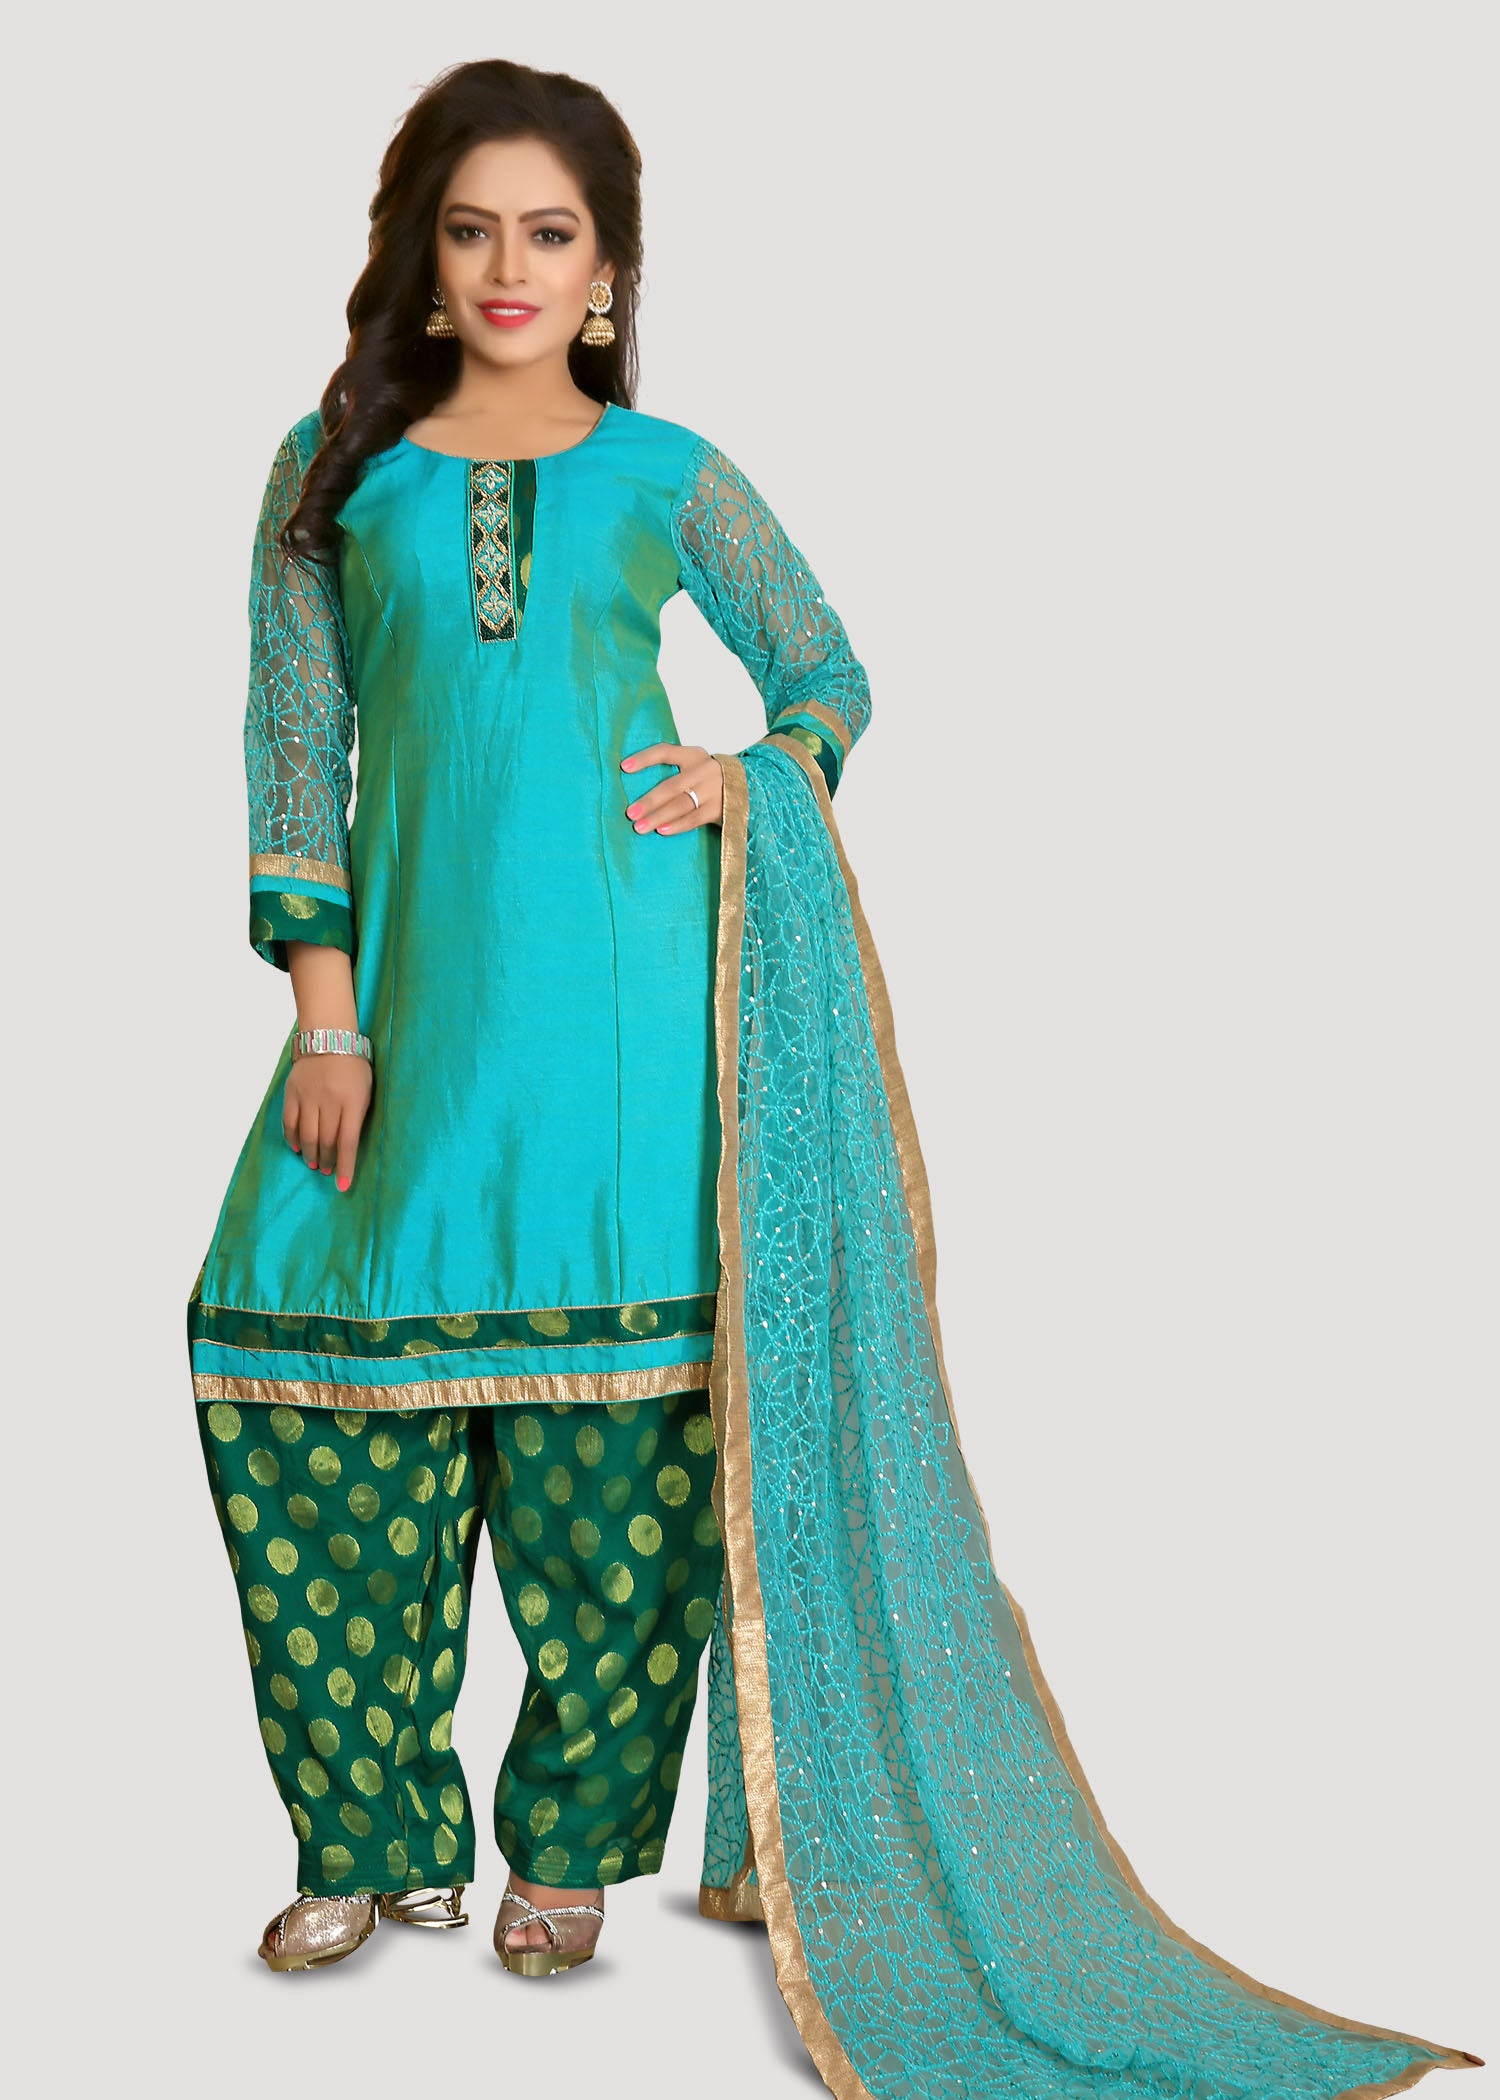 Patiala Suit with contrast thread embroidery-Firozi